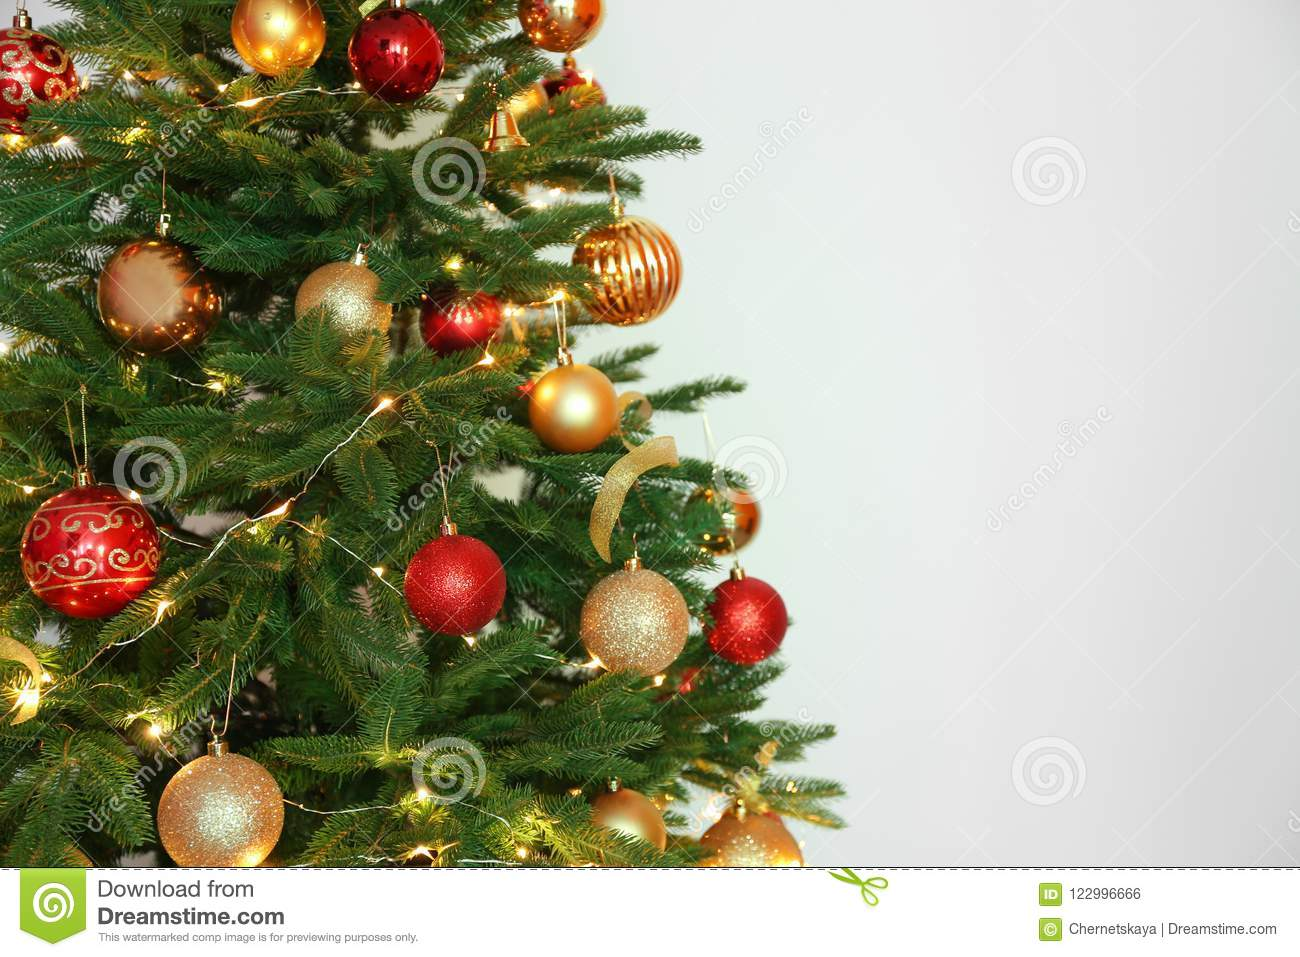 download beautiful christmas tree with fairy lights stock photo image of beautiful christmas